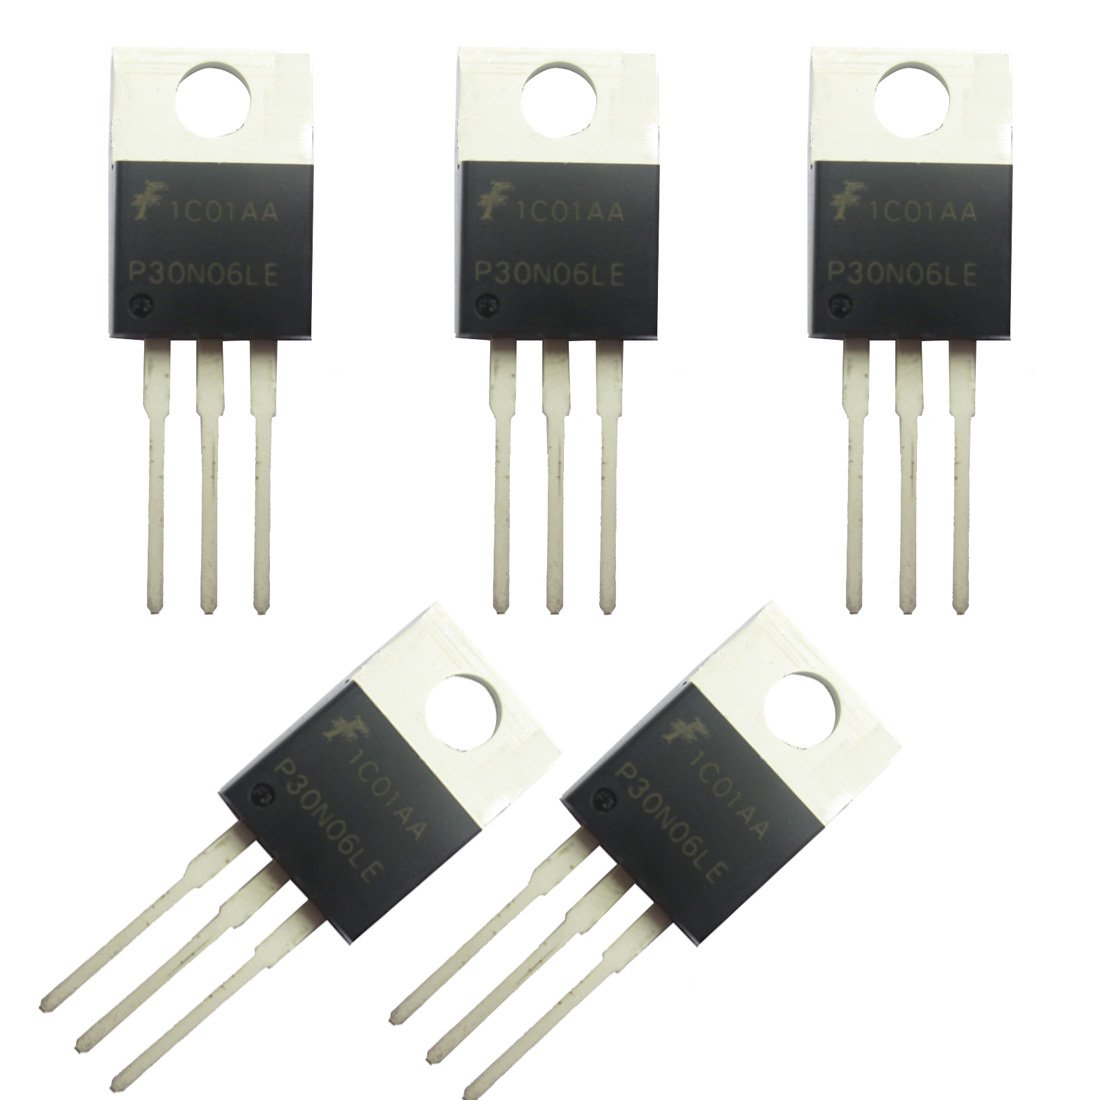 Jekewin N-Channel Power Mosfet - 30A 60V P30N06LE RFP30N06LE TO-220 ESD Rated Pack of 5